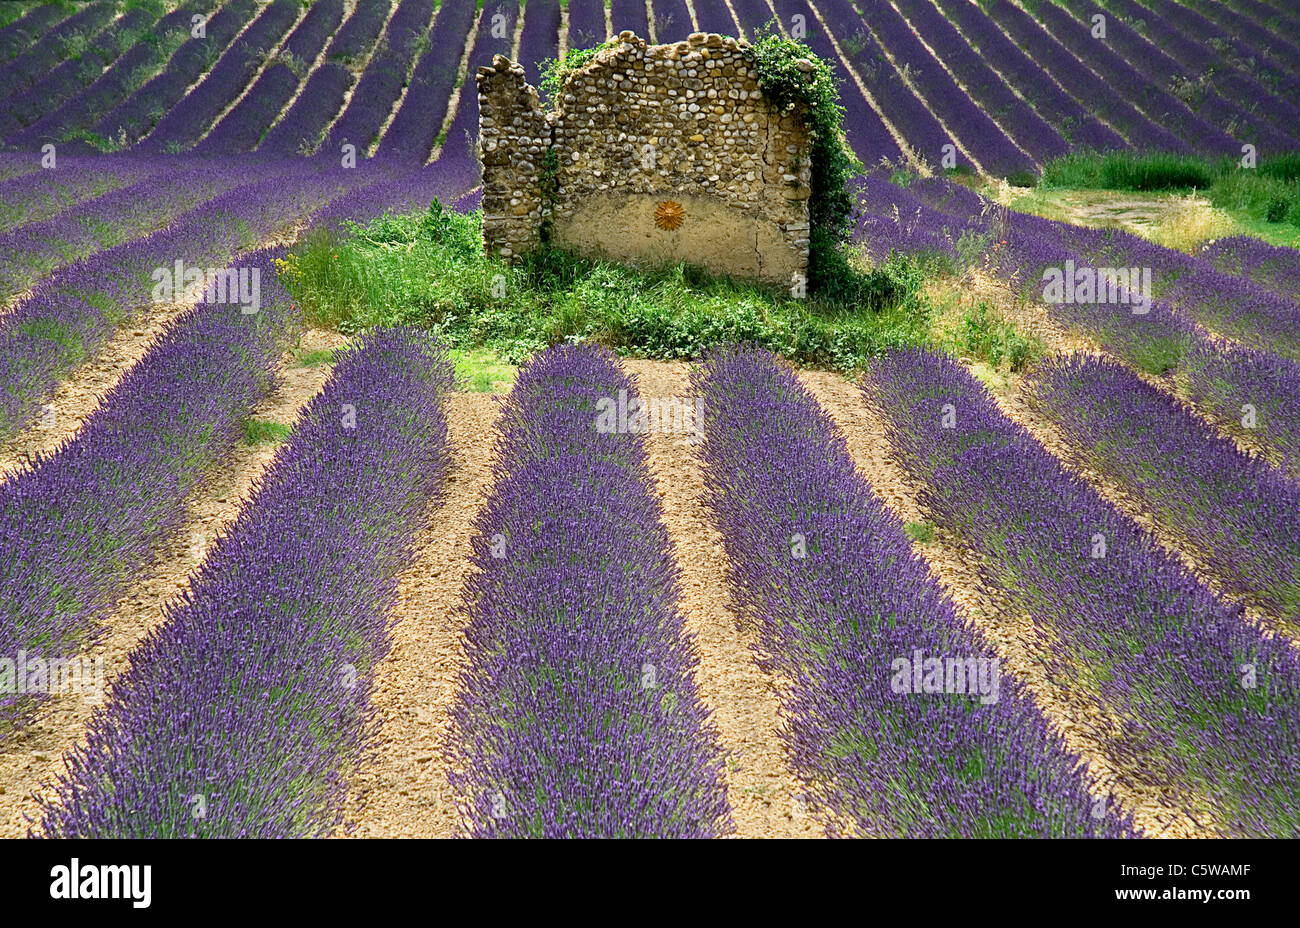 France, Provence, Valensole, Lavender field and stone house - Stock Image